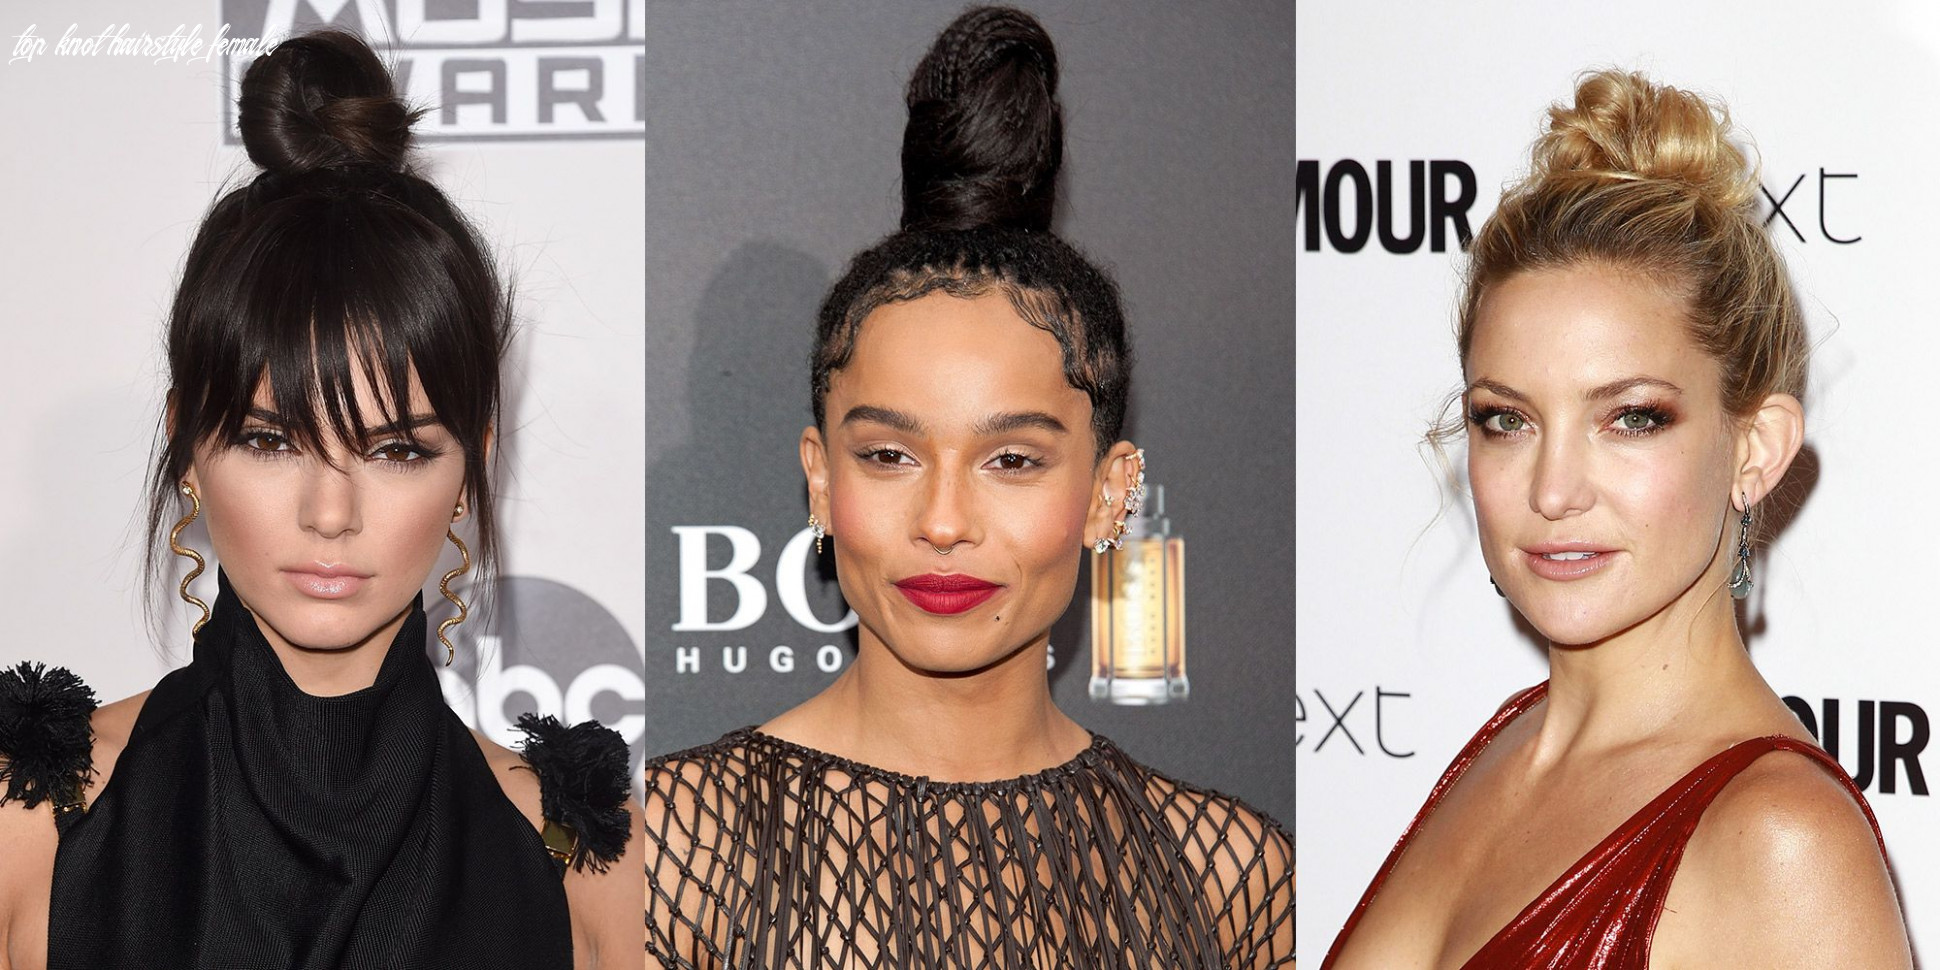 12 best top knot hairstyles of 12 celebrity top knot ideas top knot hairstyle female